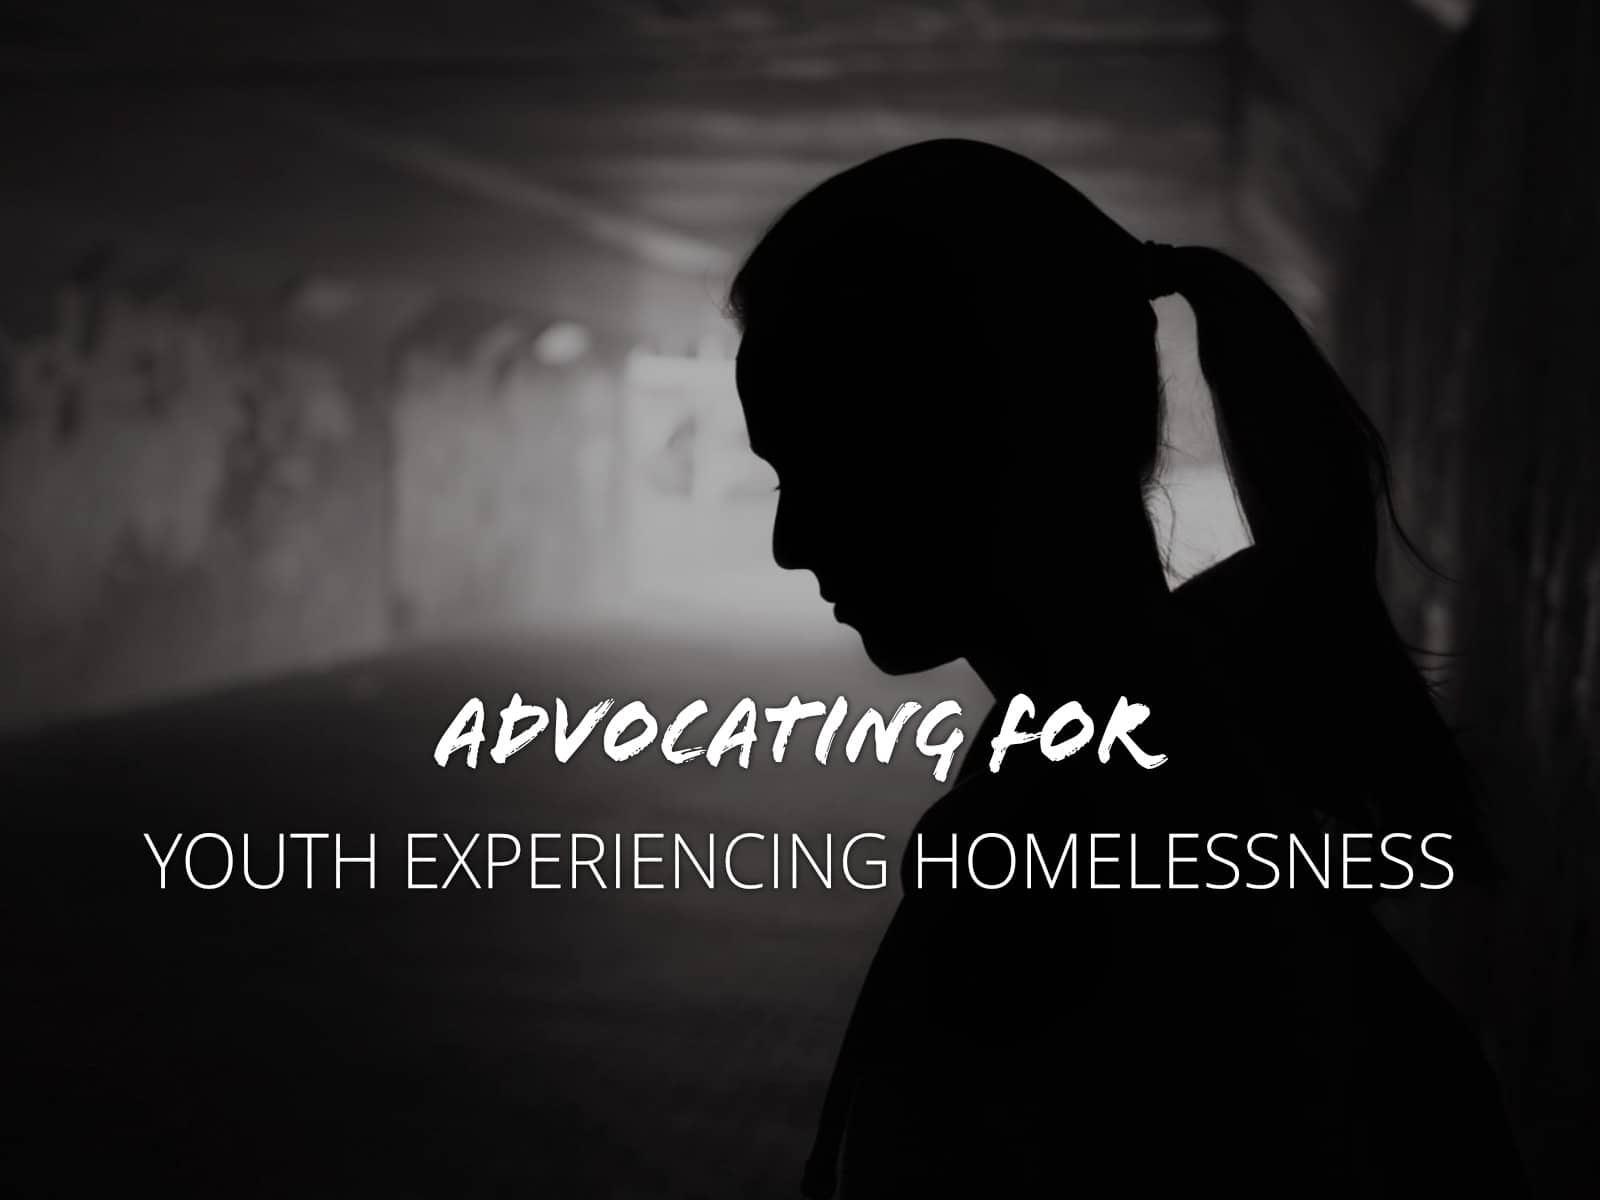 Advocating for youth experiencing homelessness